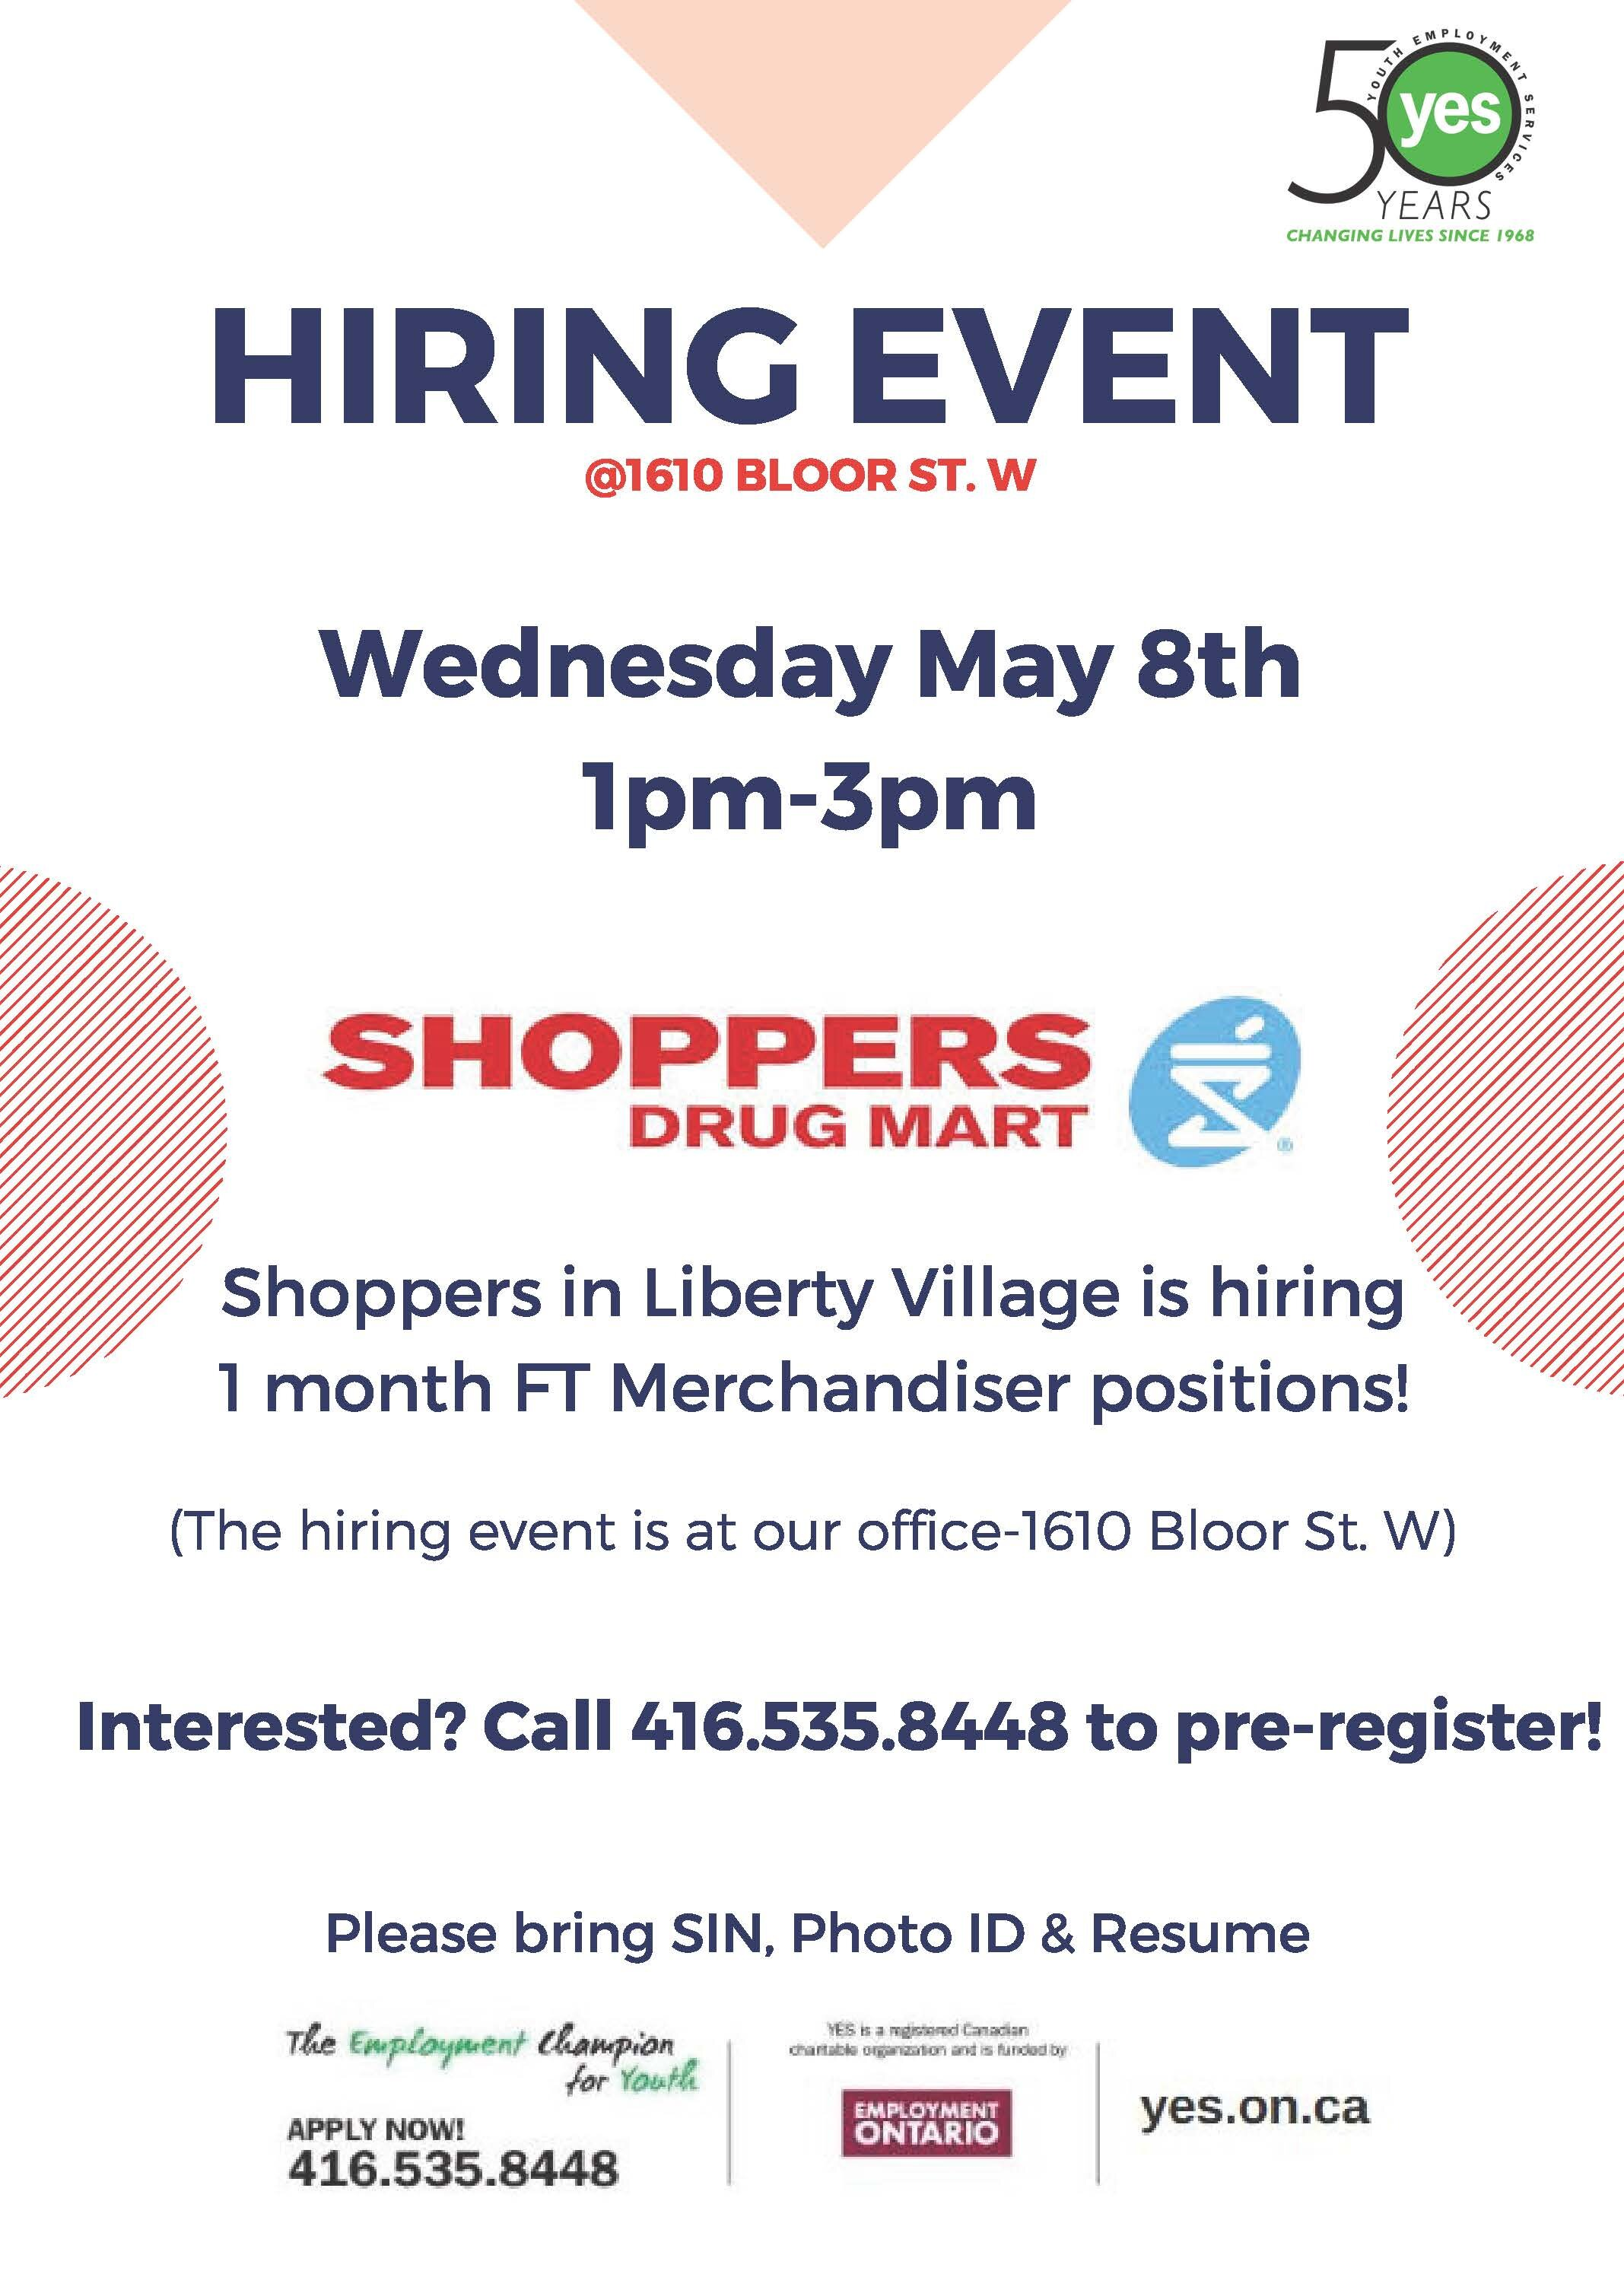 Shoppers Drug Mart Hiring Event